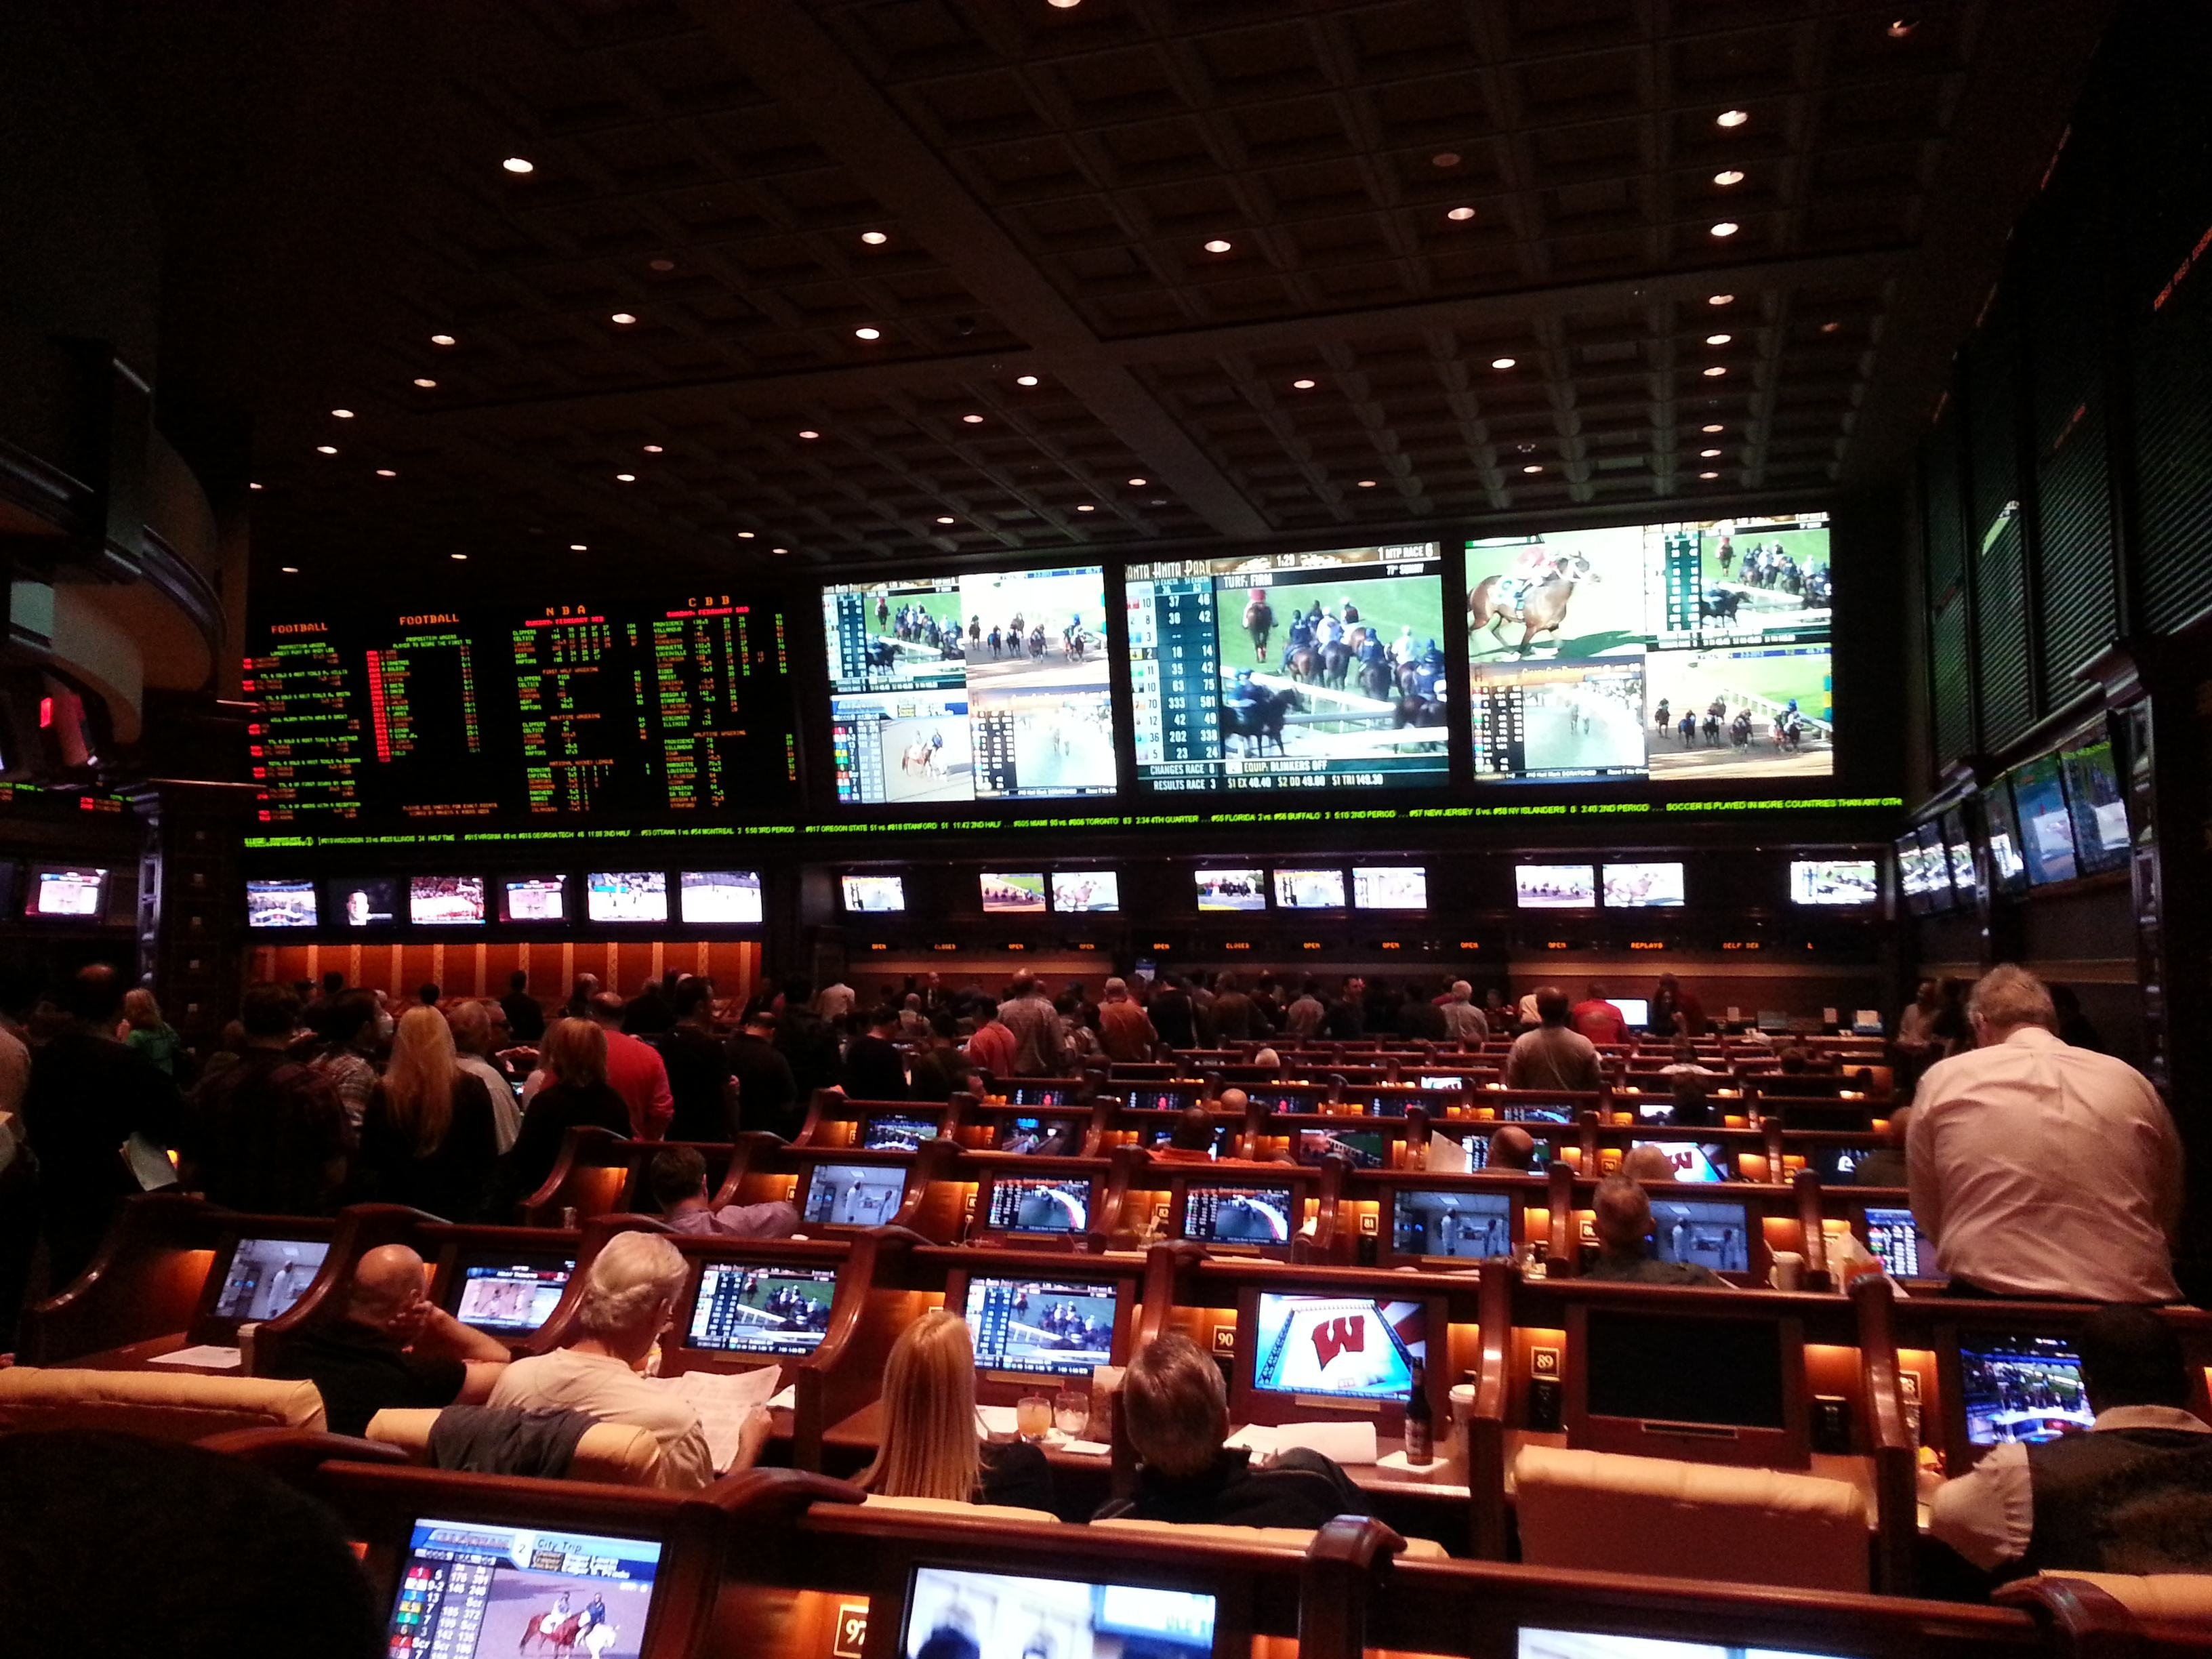 sportsbook | All the action from the casino floor: news, views and more